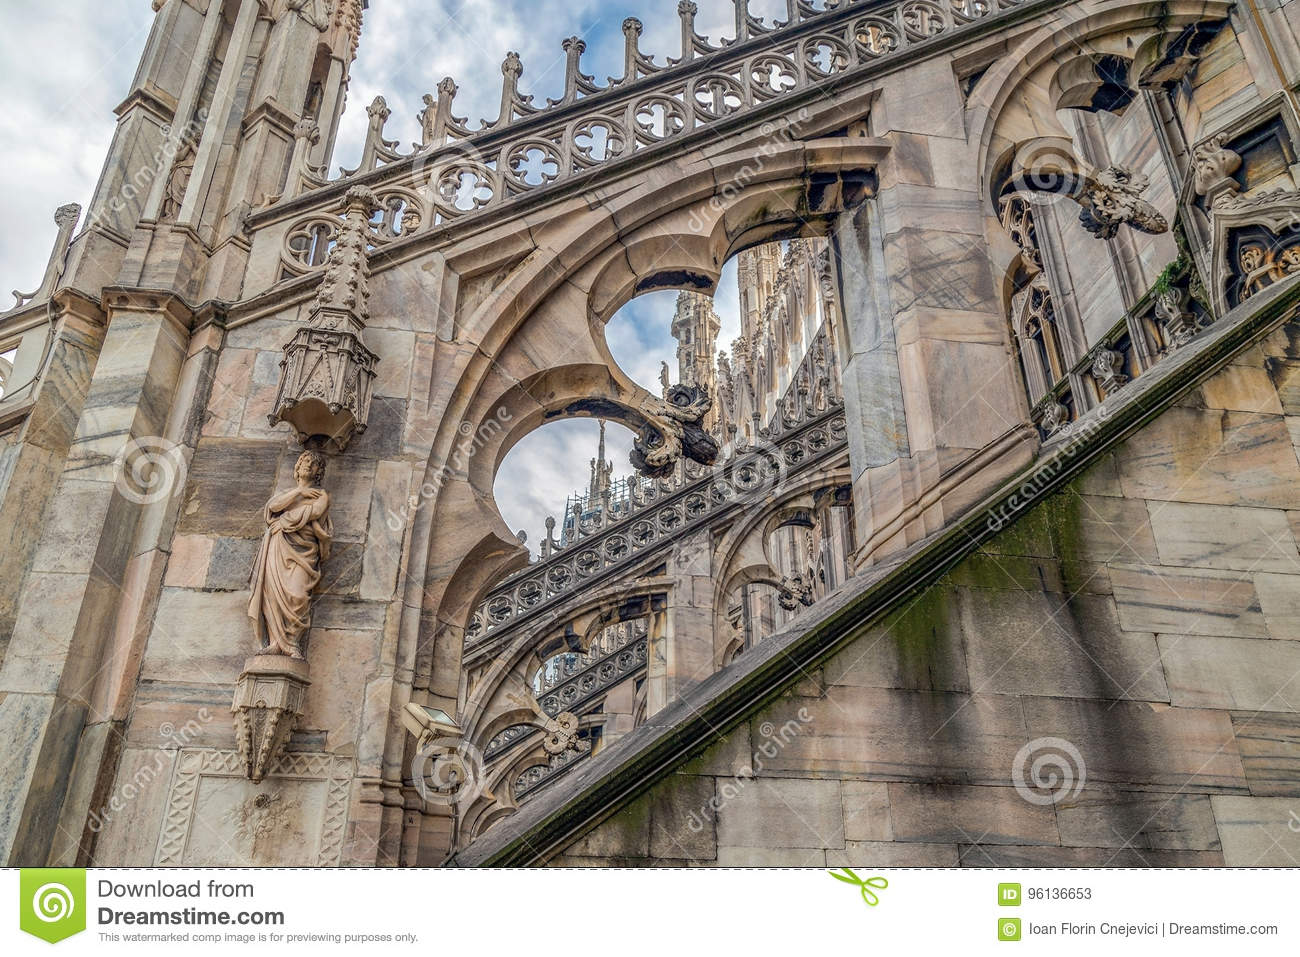 Architectonic details from the famous Milan Cathedral, Italy